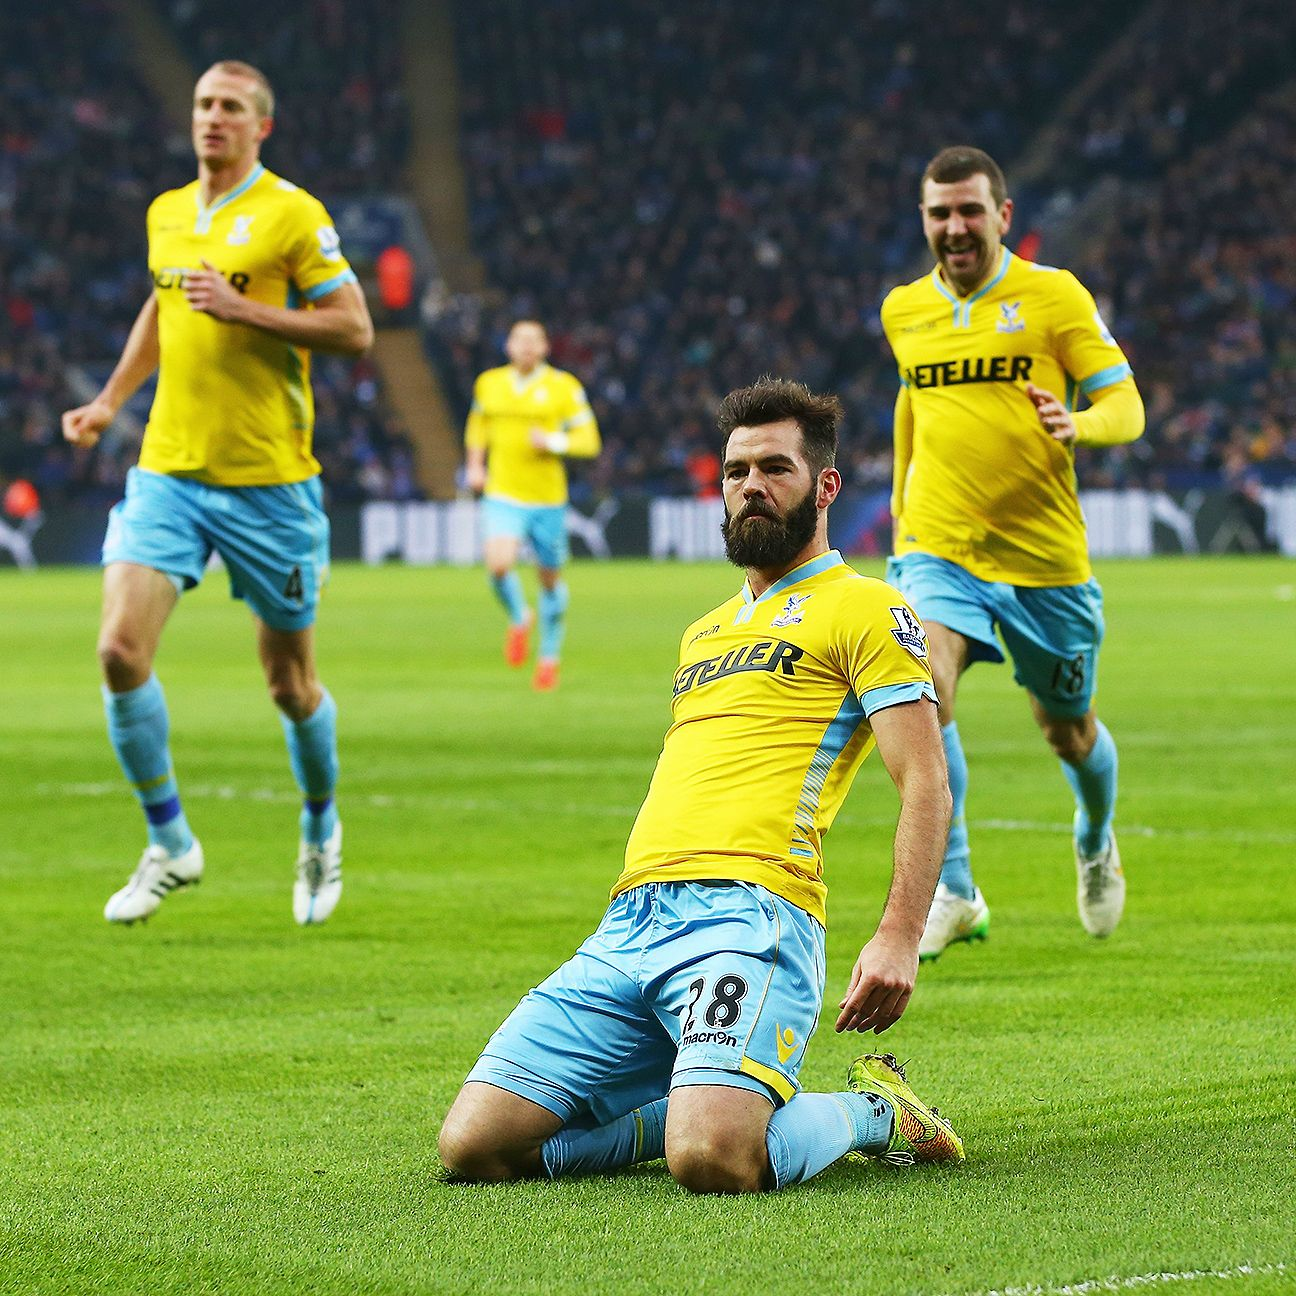 Joe Ledley was the hero for Palace in their win at Leicester.